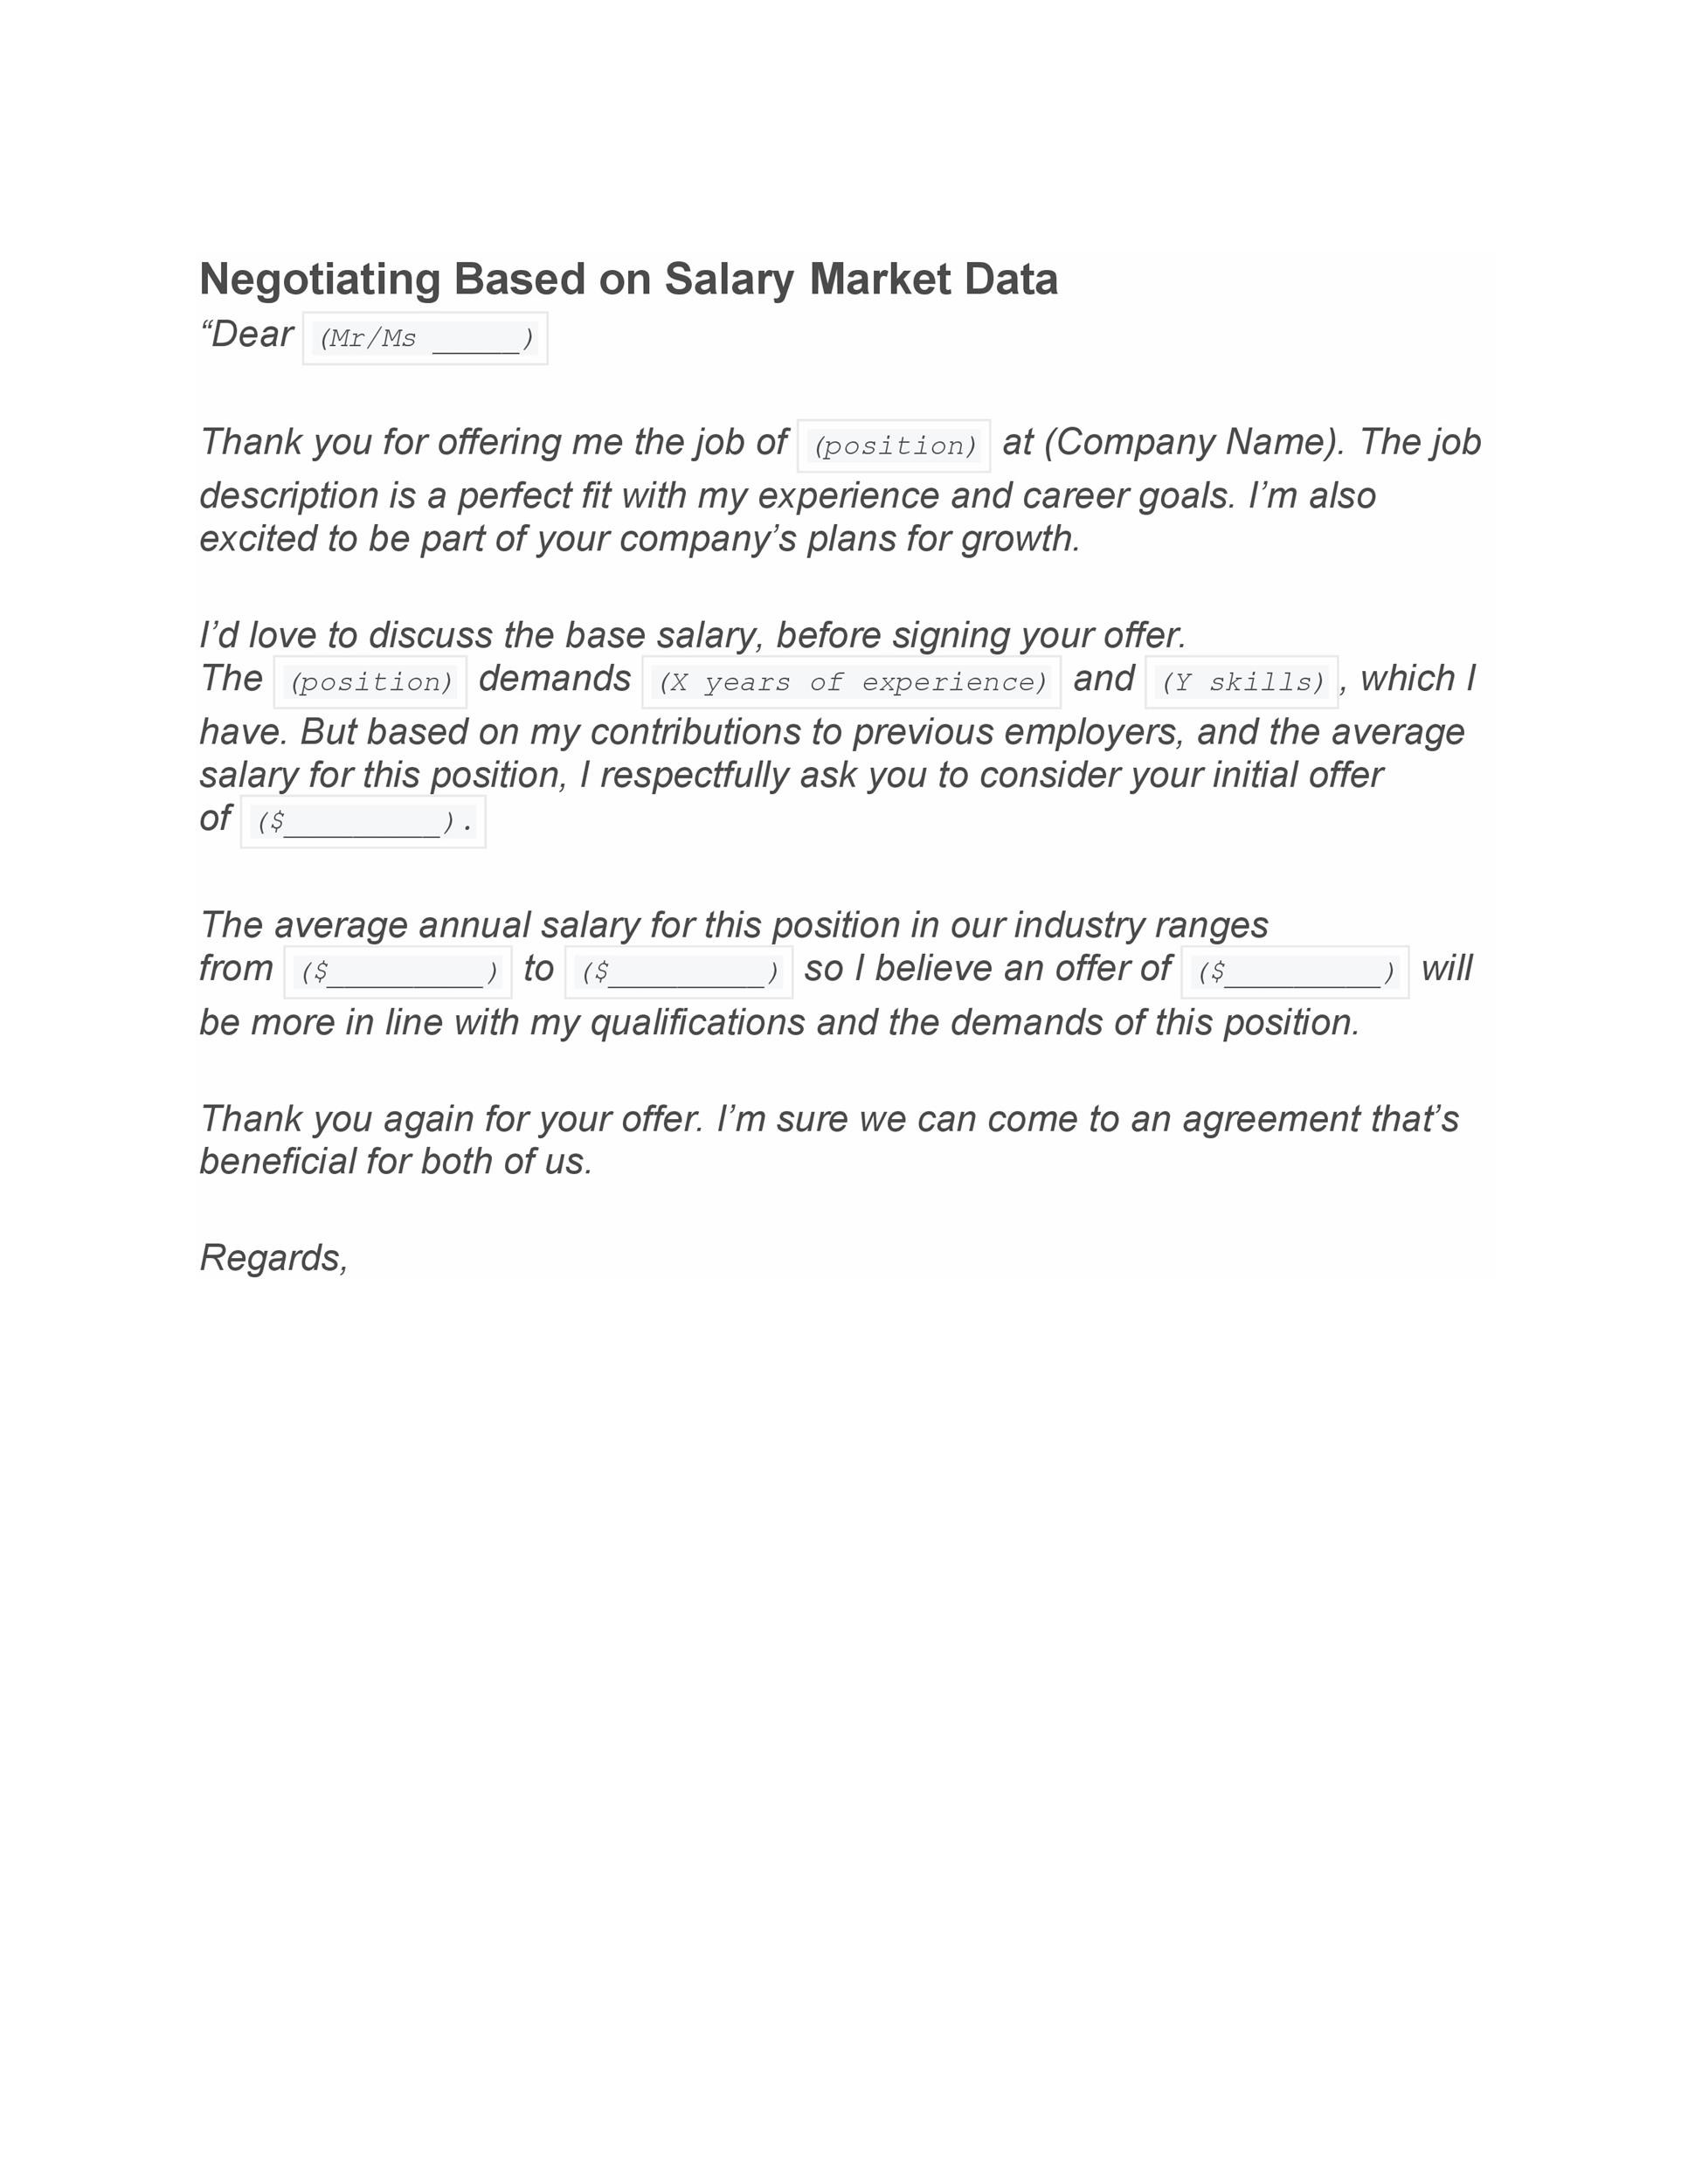 Free salary requirements cover letter 30